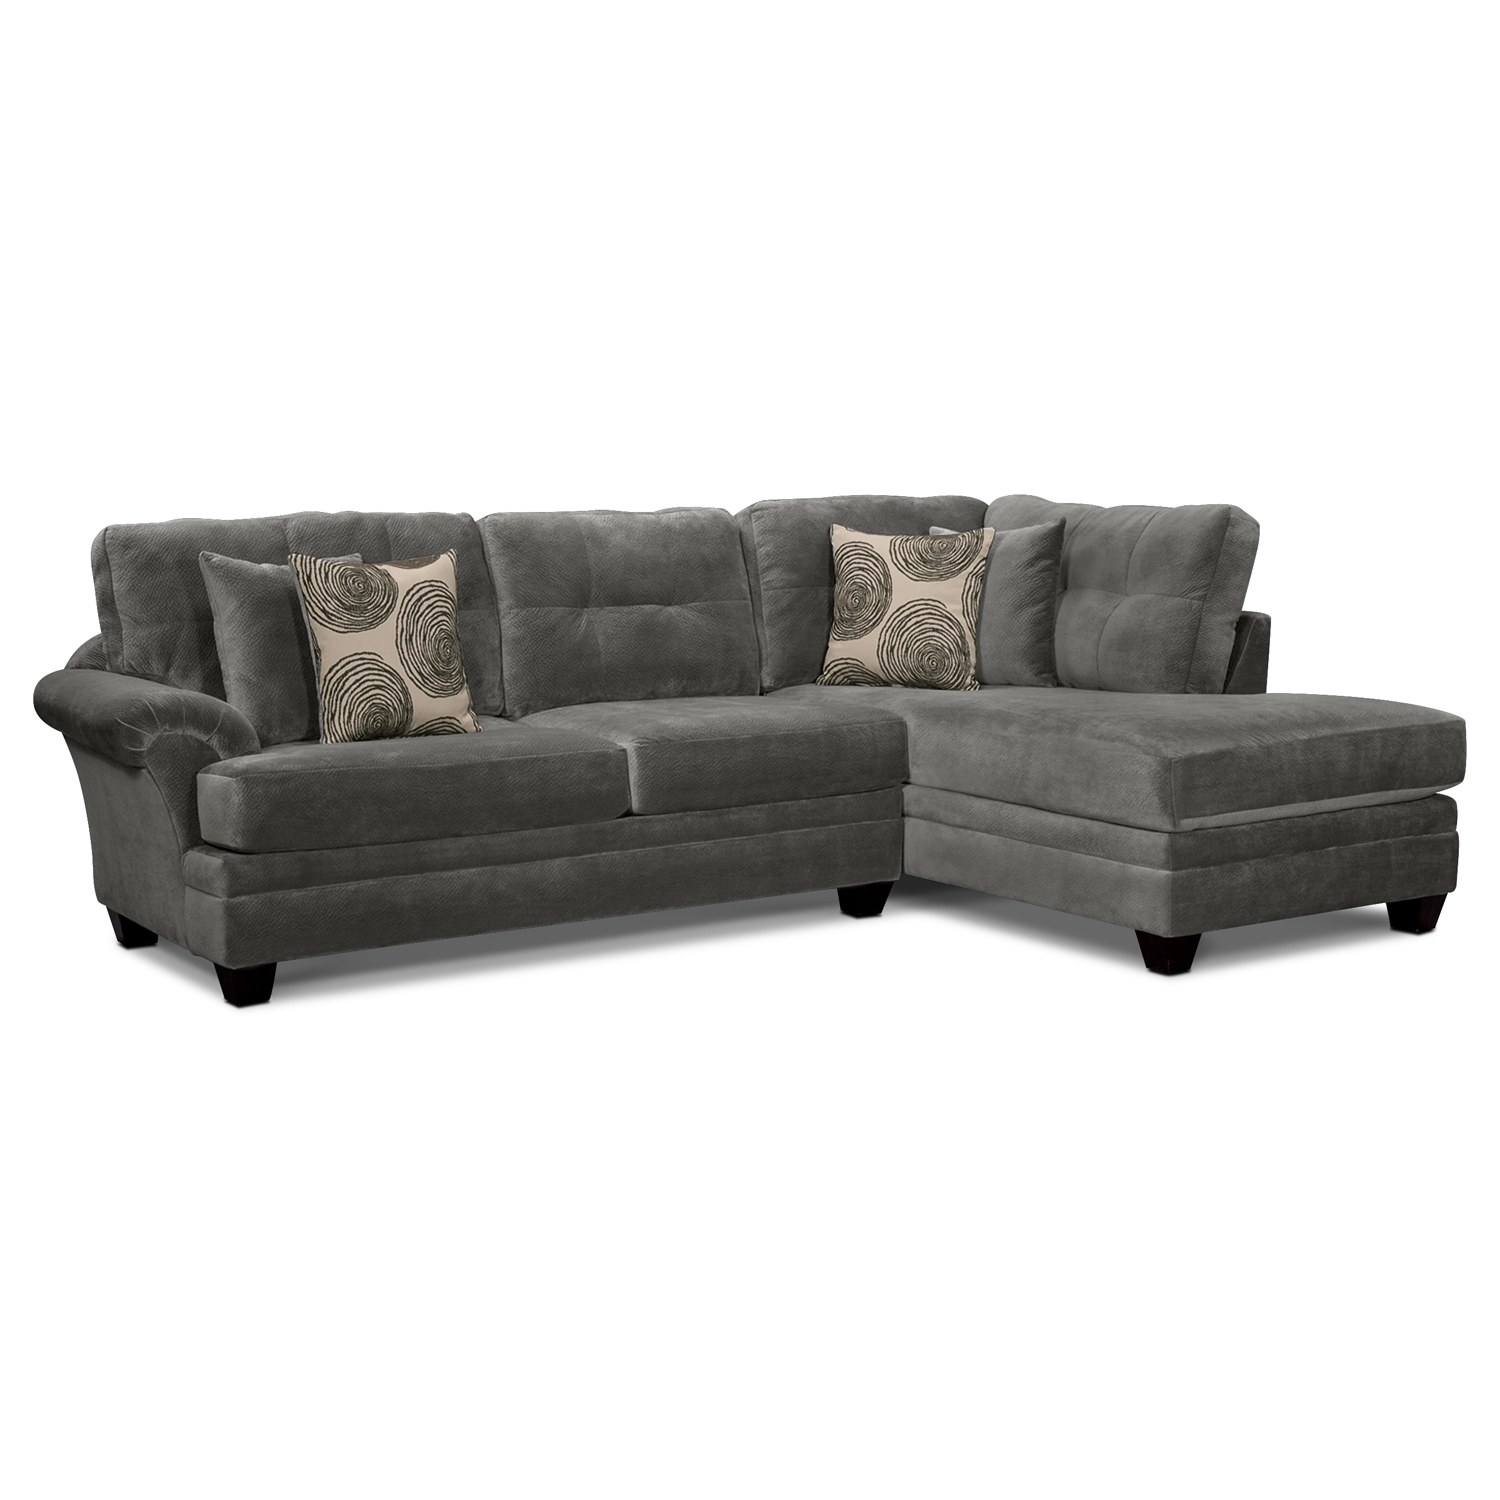 Fresh Value City Sectional Sofa 49 On Sofa Room Ideas With Value Inside Value City Sectional Sofas (View 9 of 10)